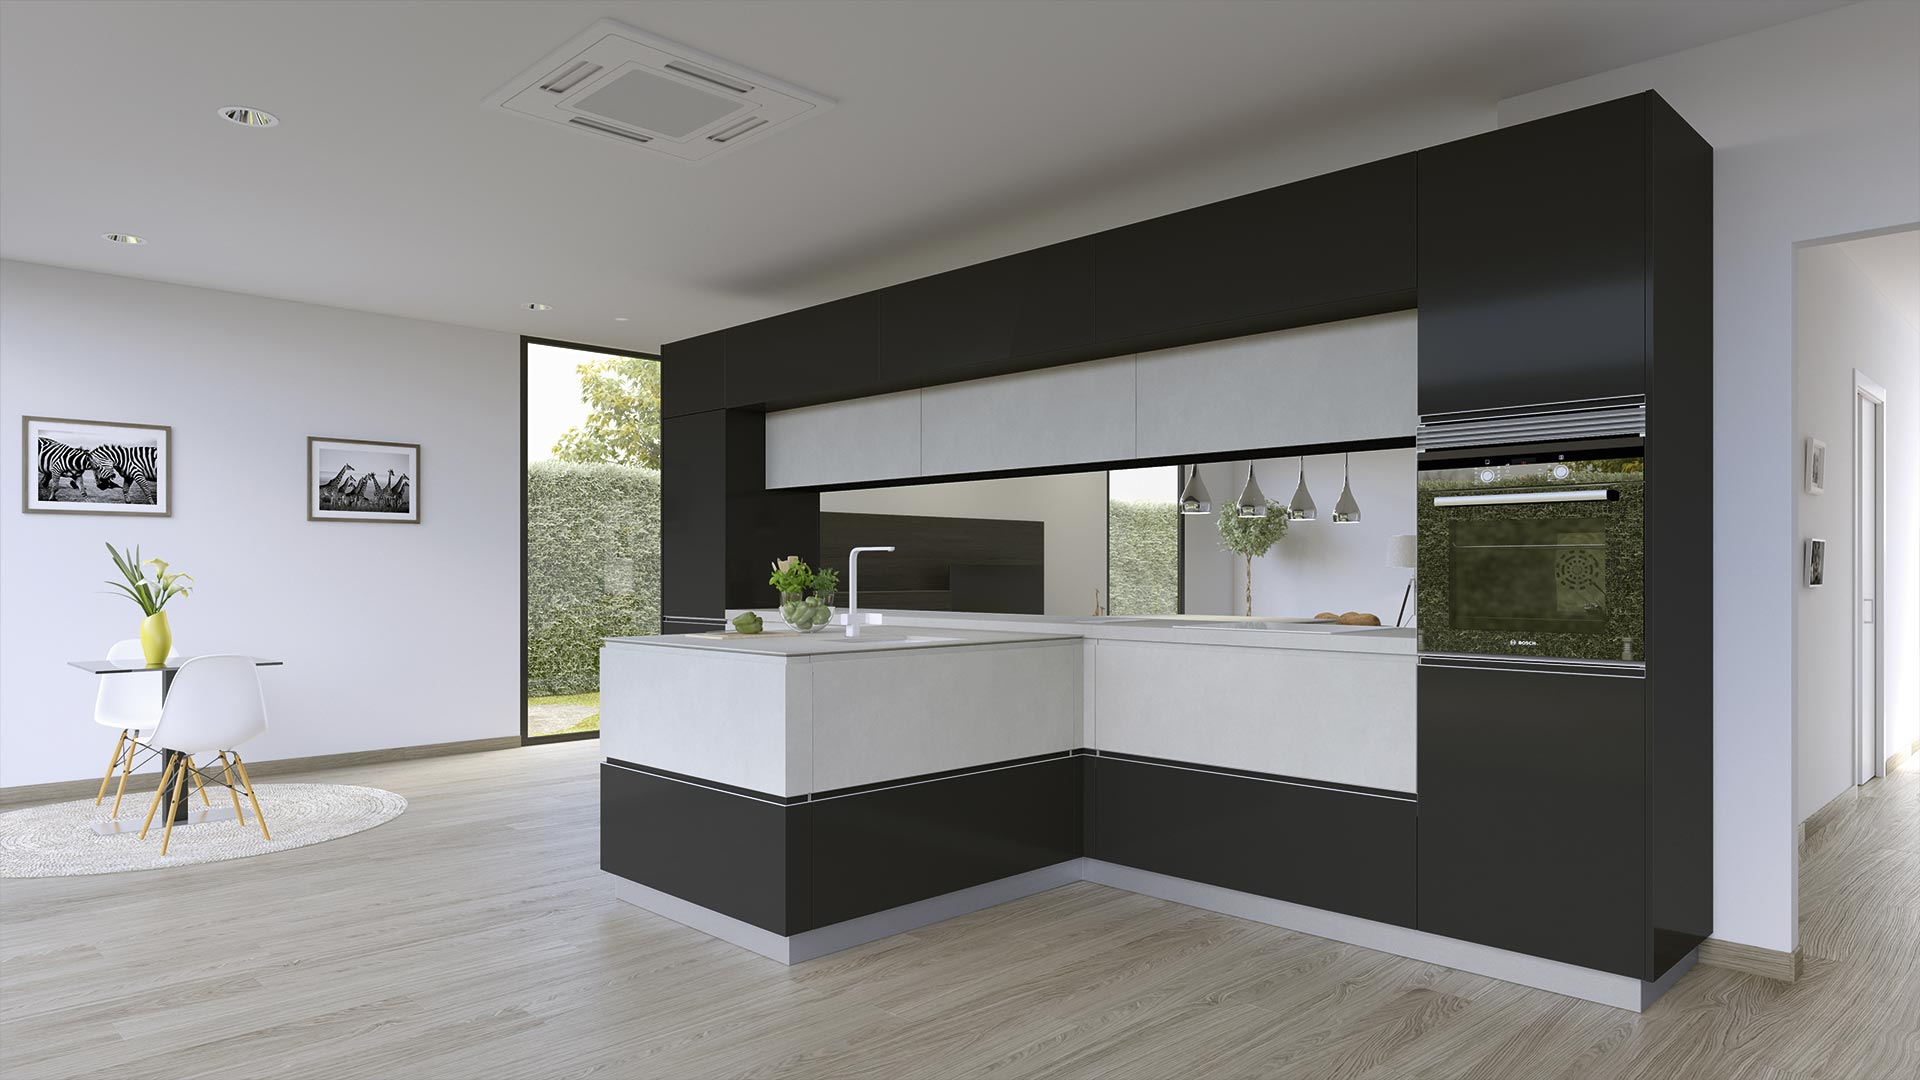 designer kitchen, kitchen furniture, designer kitchen furniture